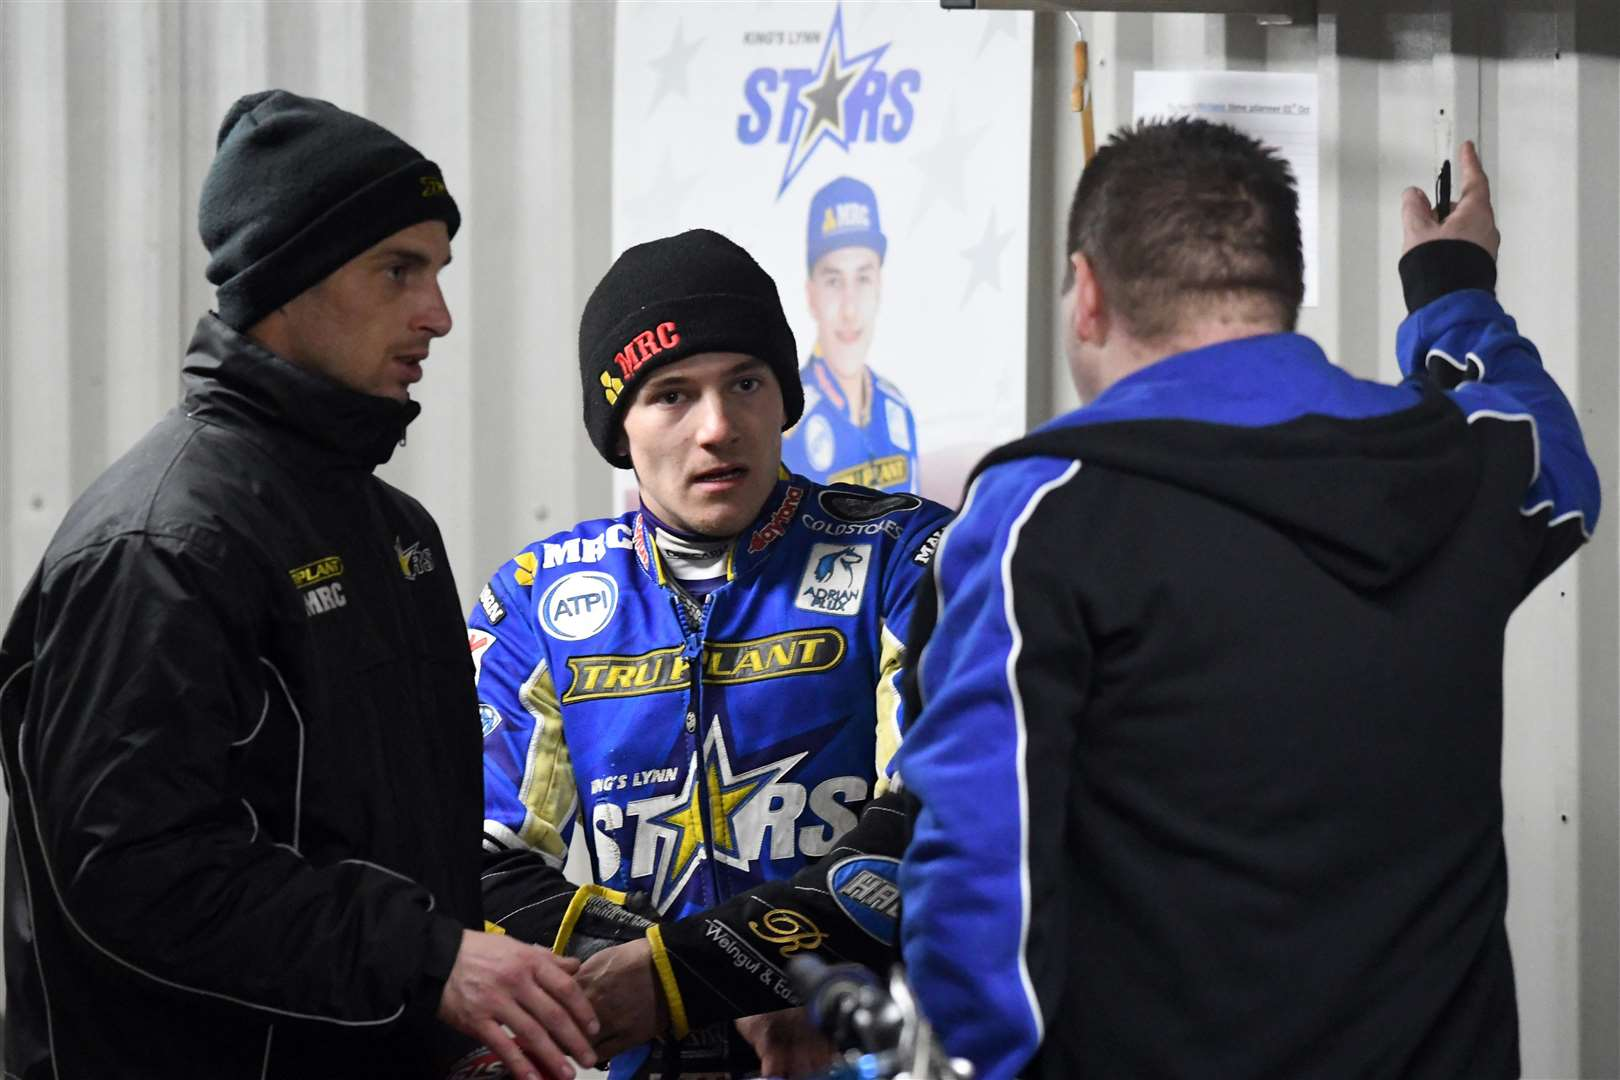 Kings Lynn Stars v Belle Vue. (4515941)